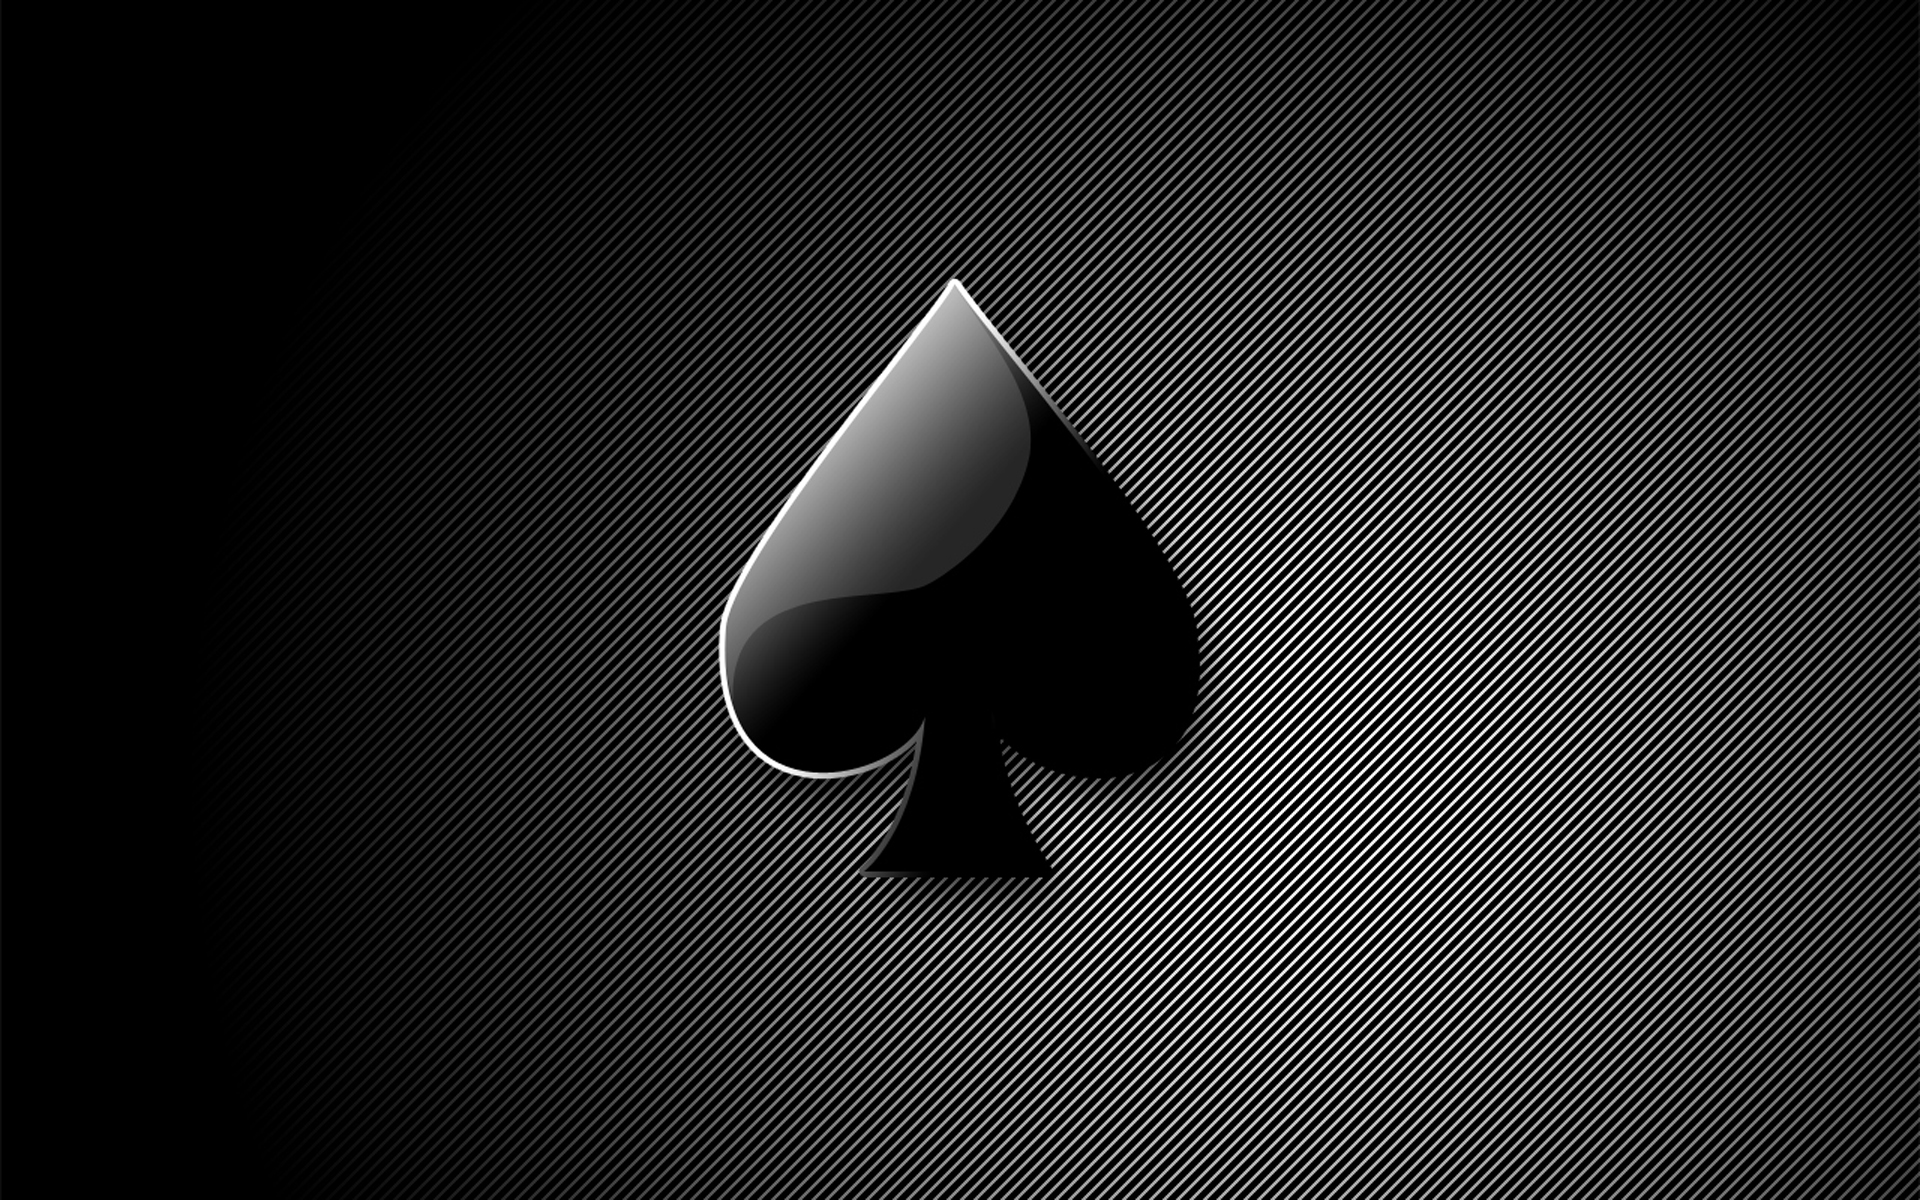 black ace spade Maverick HD Wallpaper